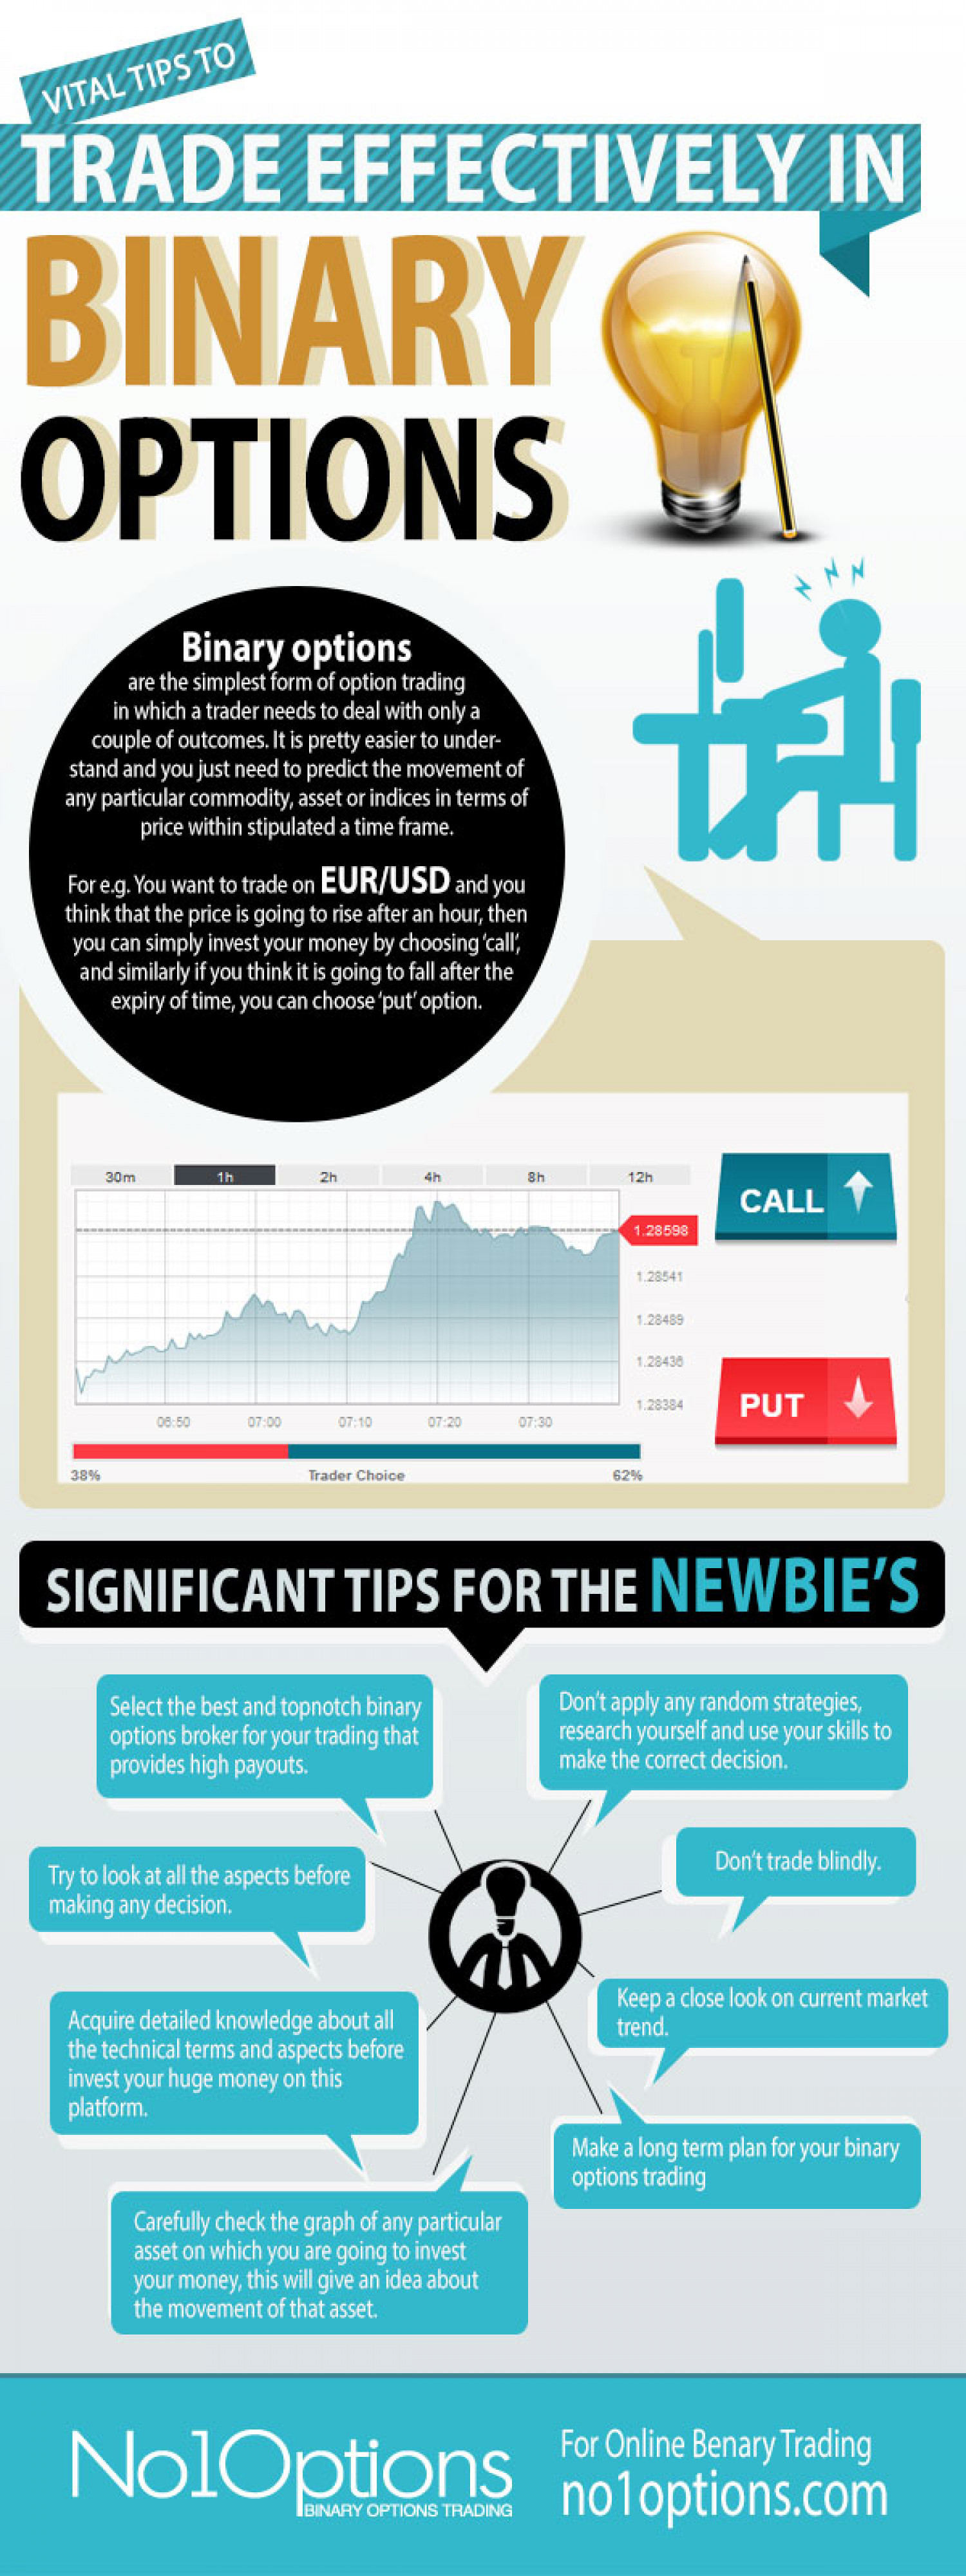 When to trade binary options